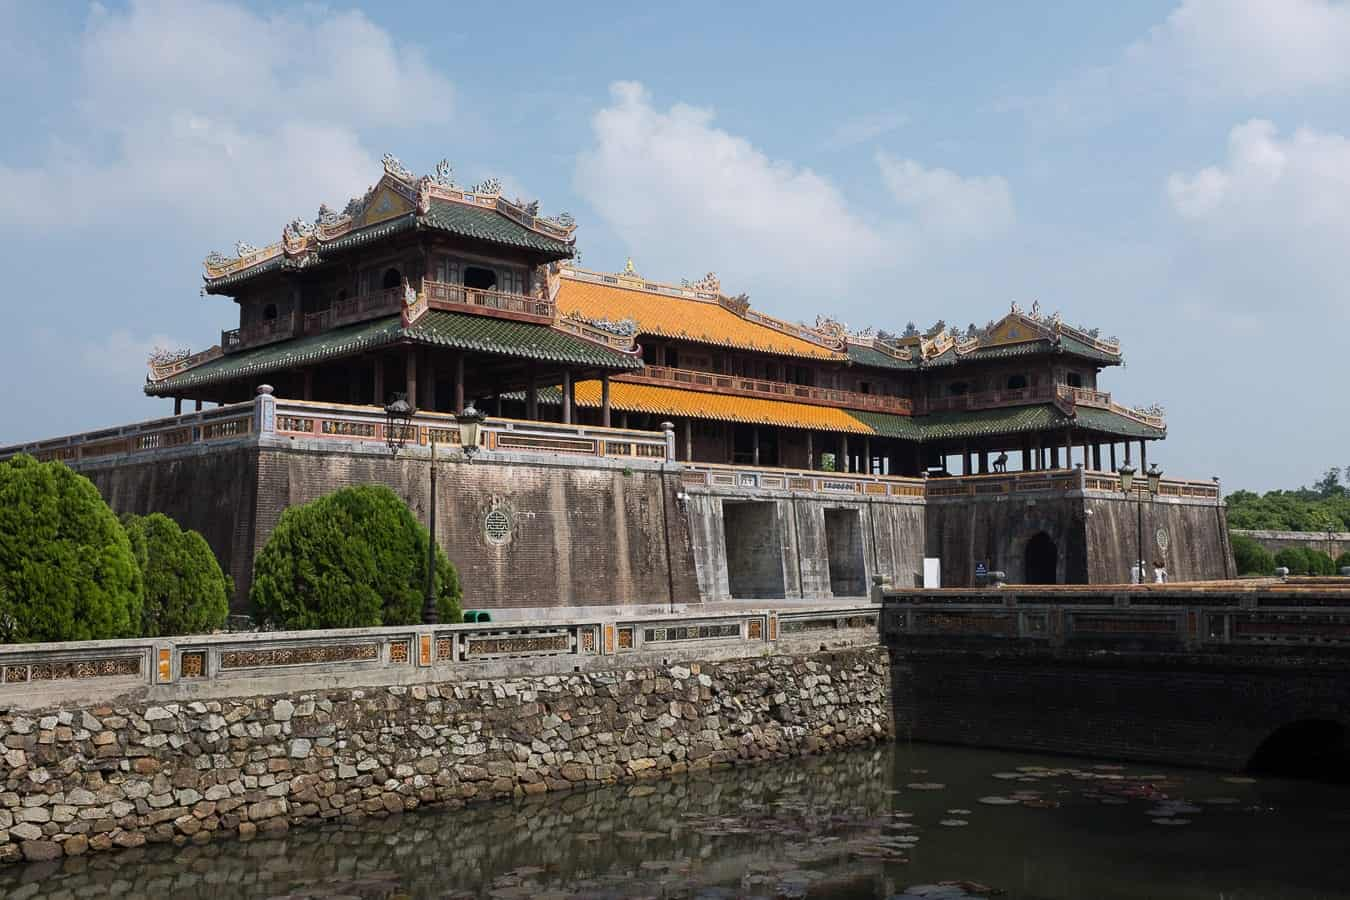 Imperial City of Hue - Hoi An to Hue